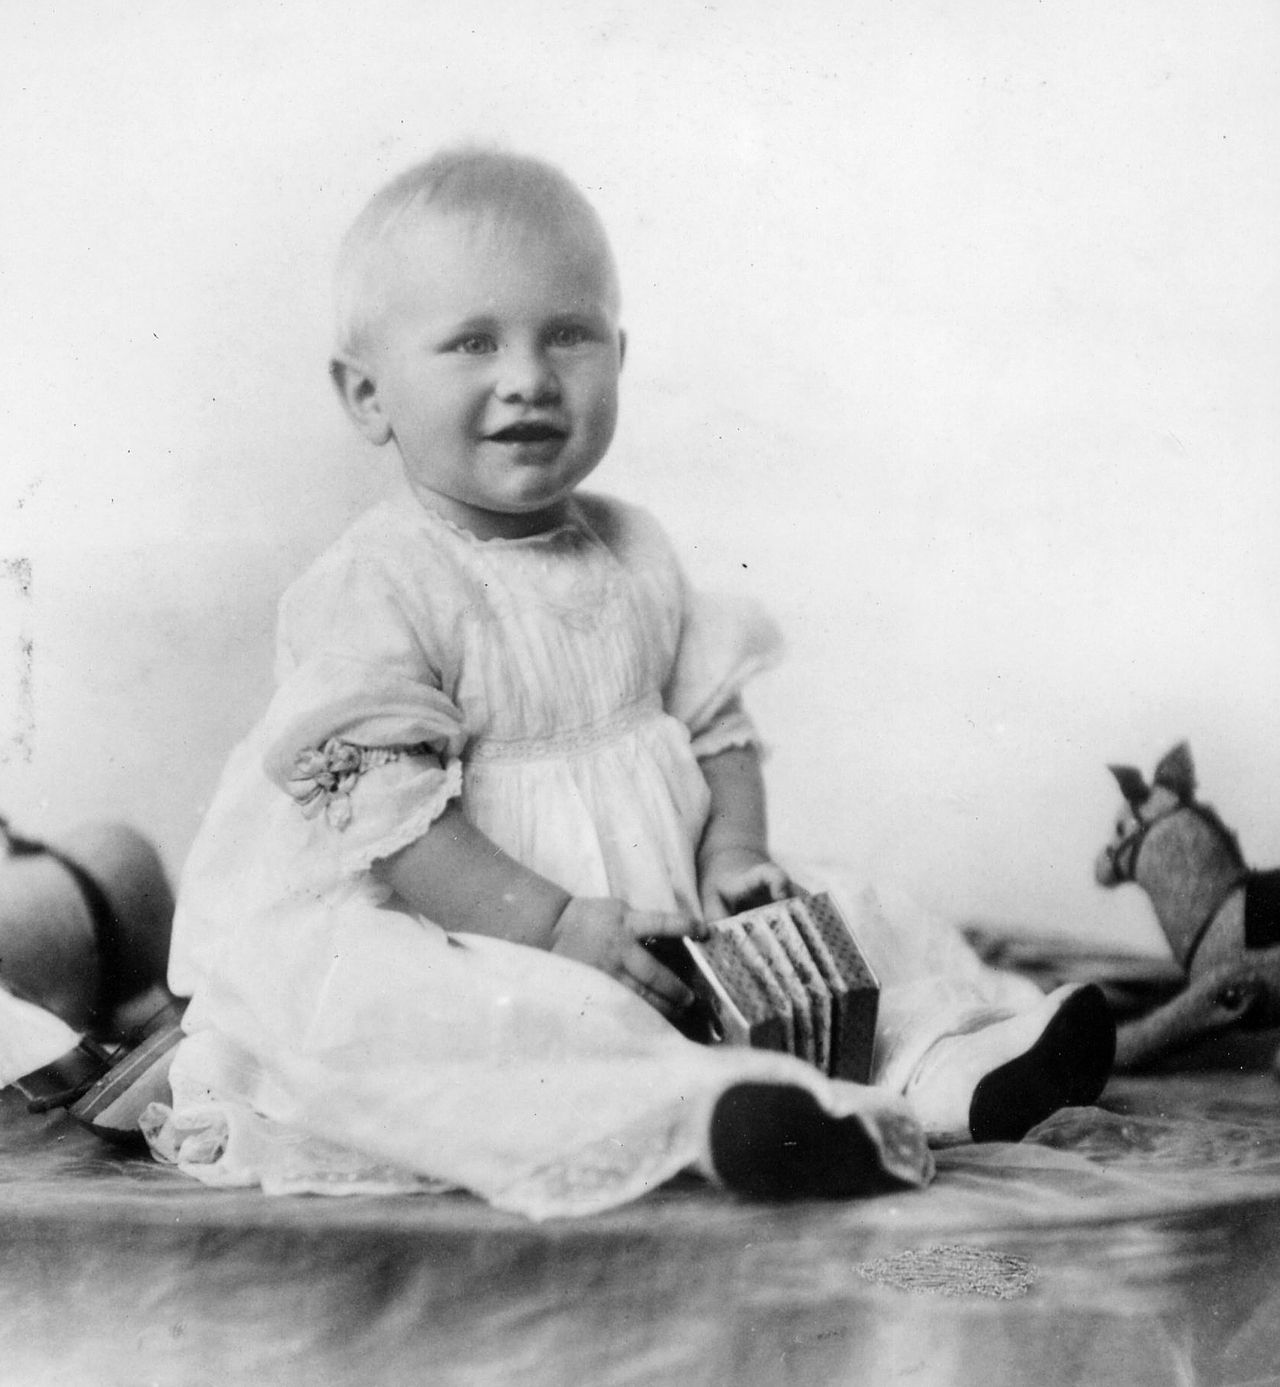 Until around the 1940s, it was common for baby boys to be outfitted in dresses. Above is a picture of Gerald Ford as a ten month old in one such dress. FDR was also outfitted similarly, at an even older age, as seen here.